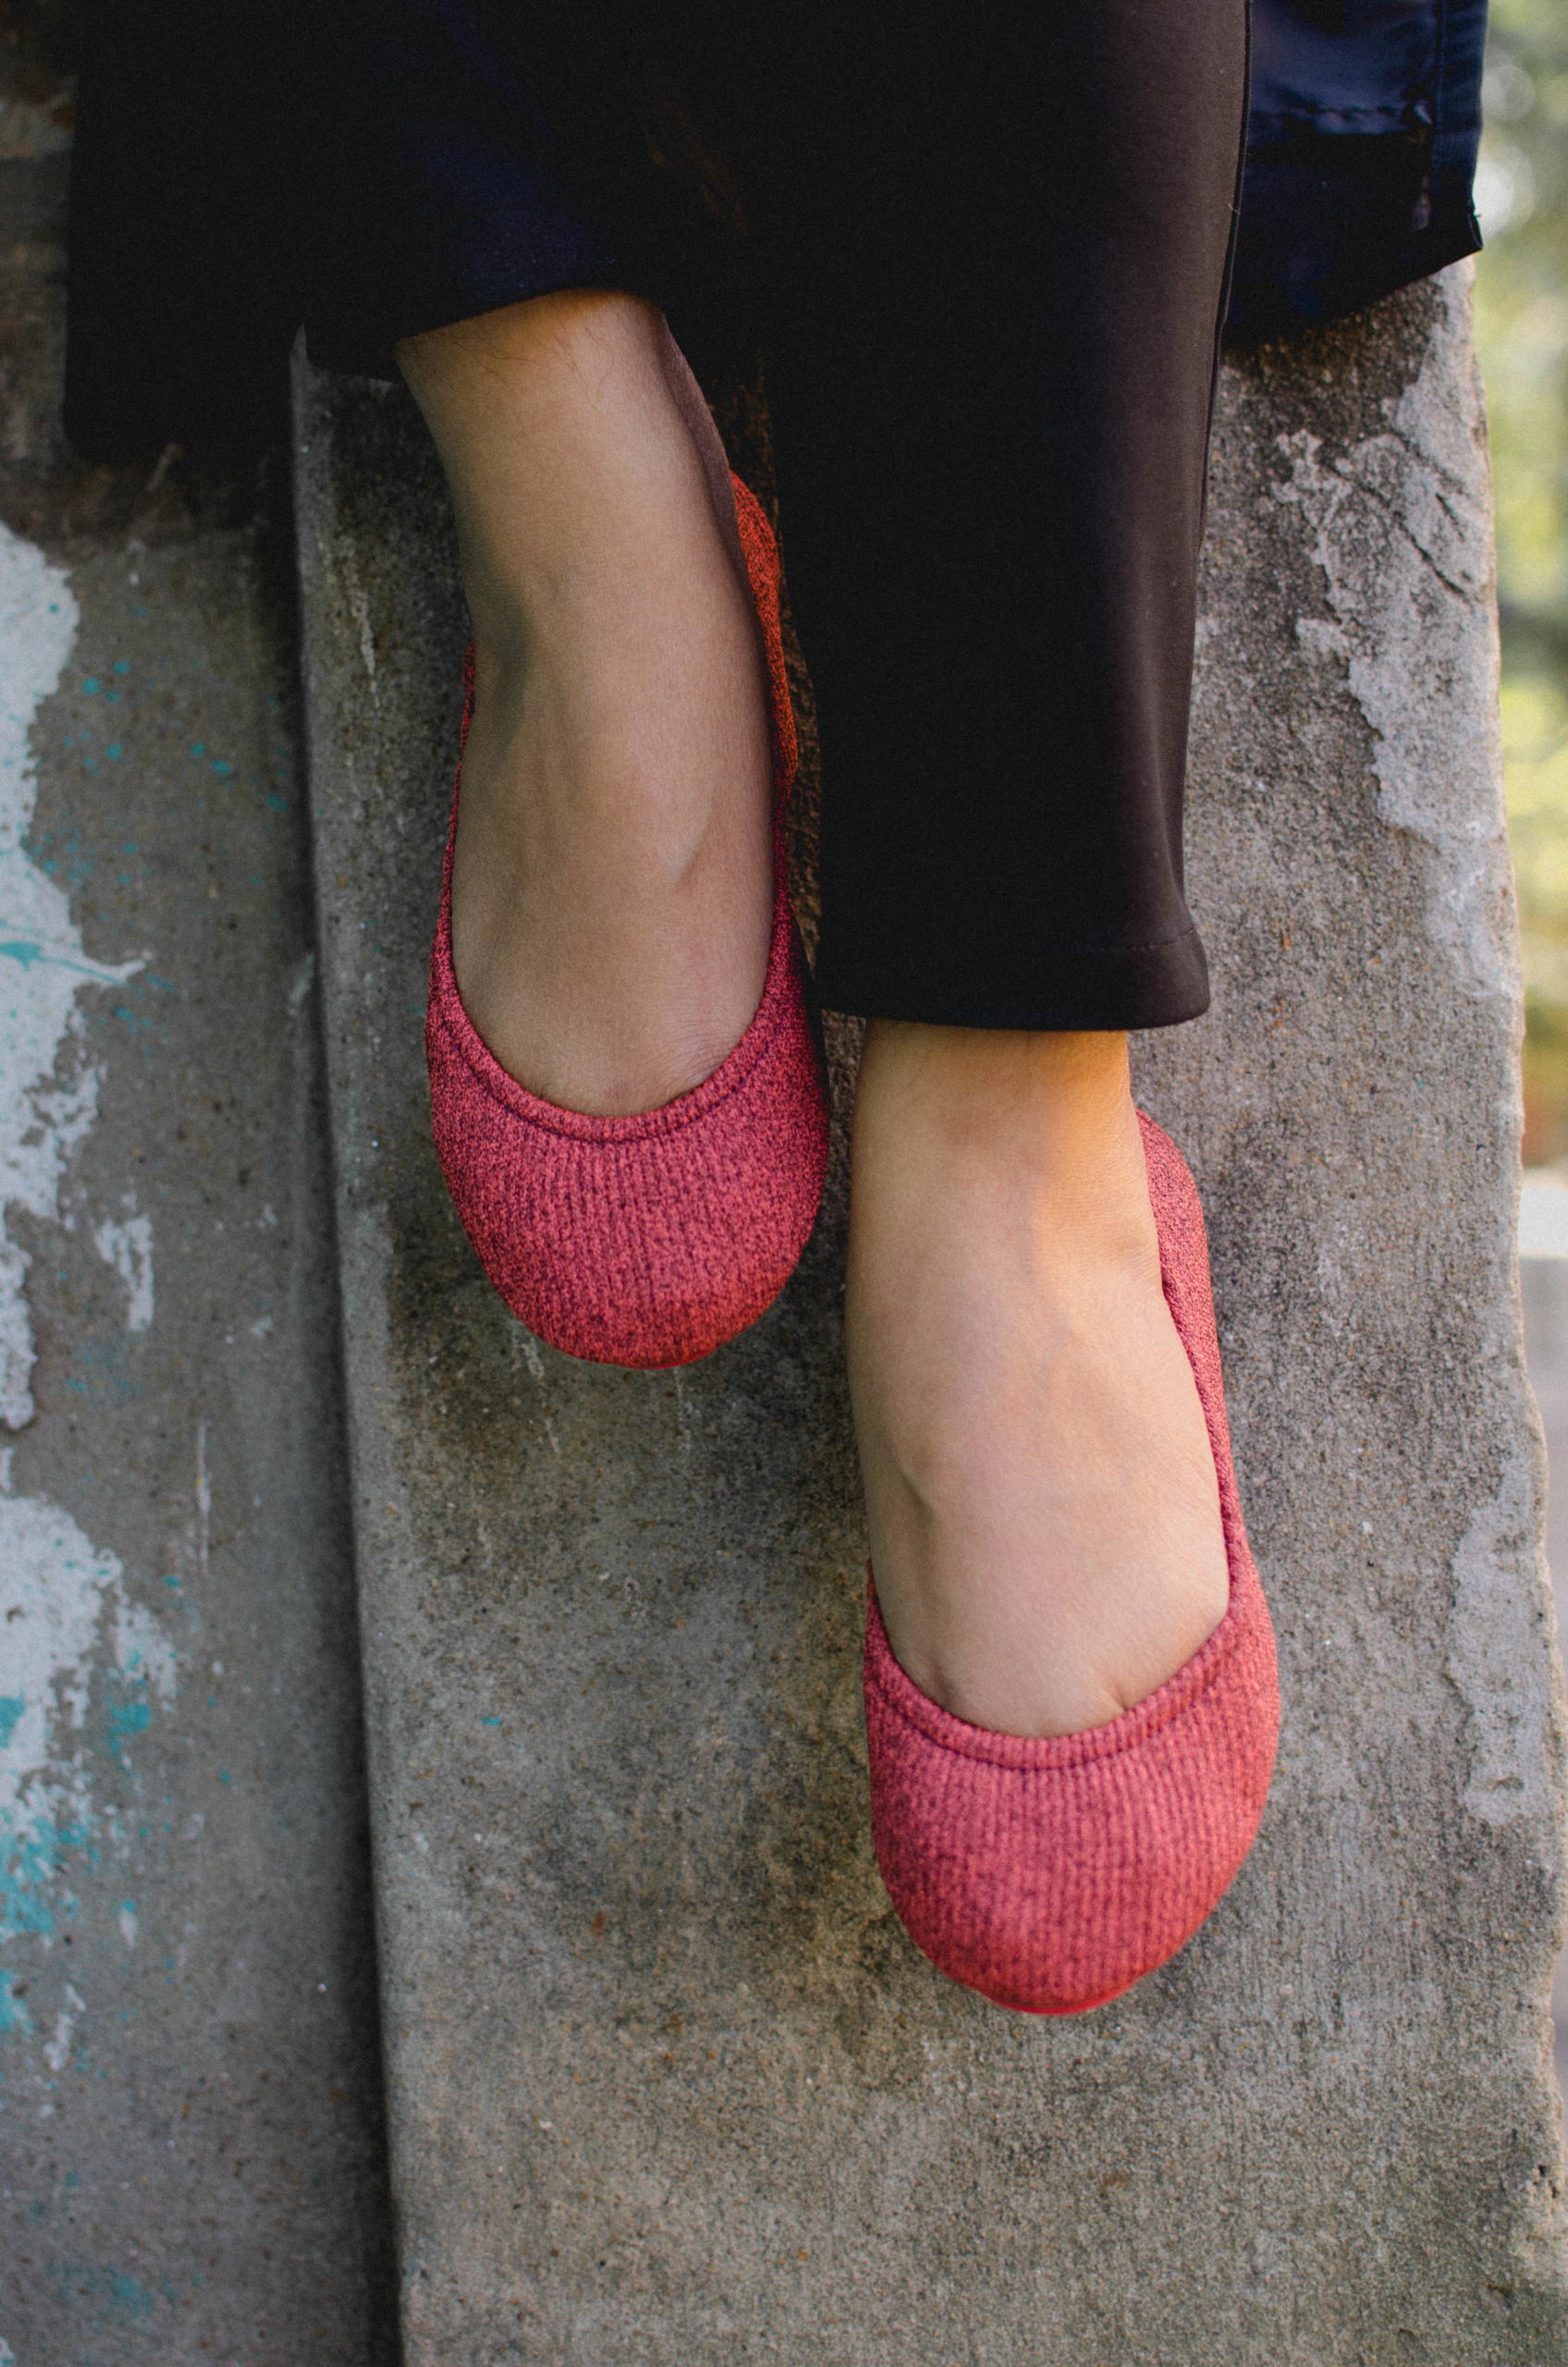 Happenstance- When Comfort Meets Style | Cherry On Top Blog | Happenstance Footwear |